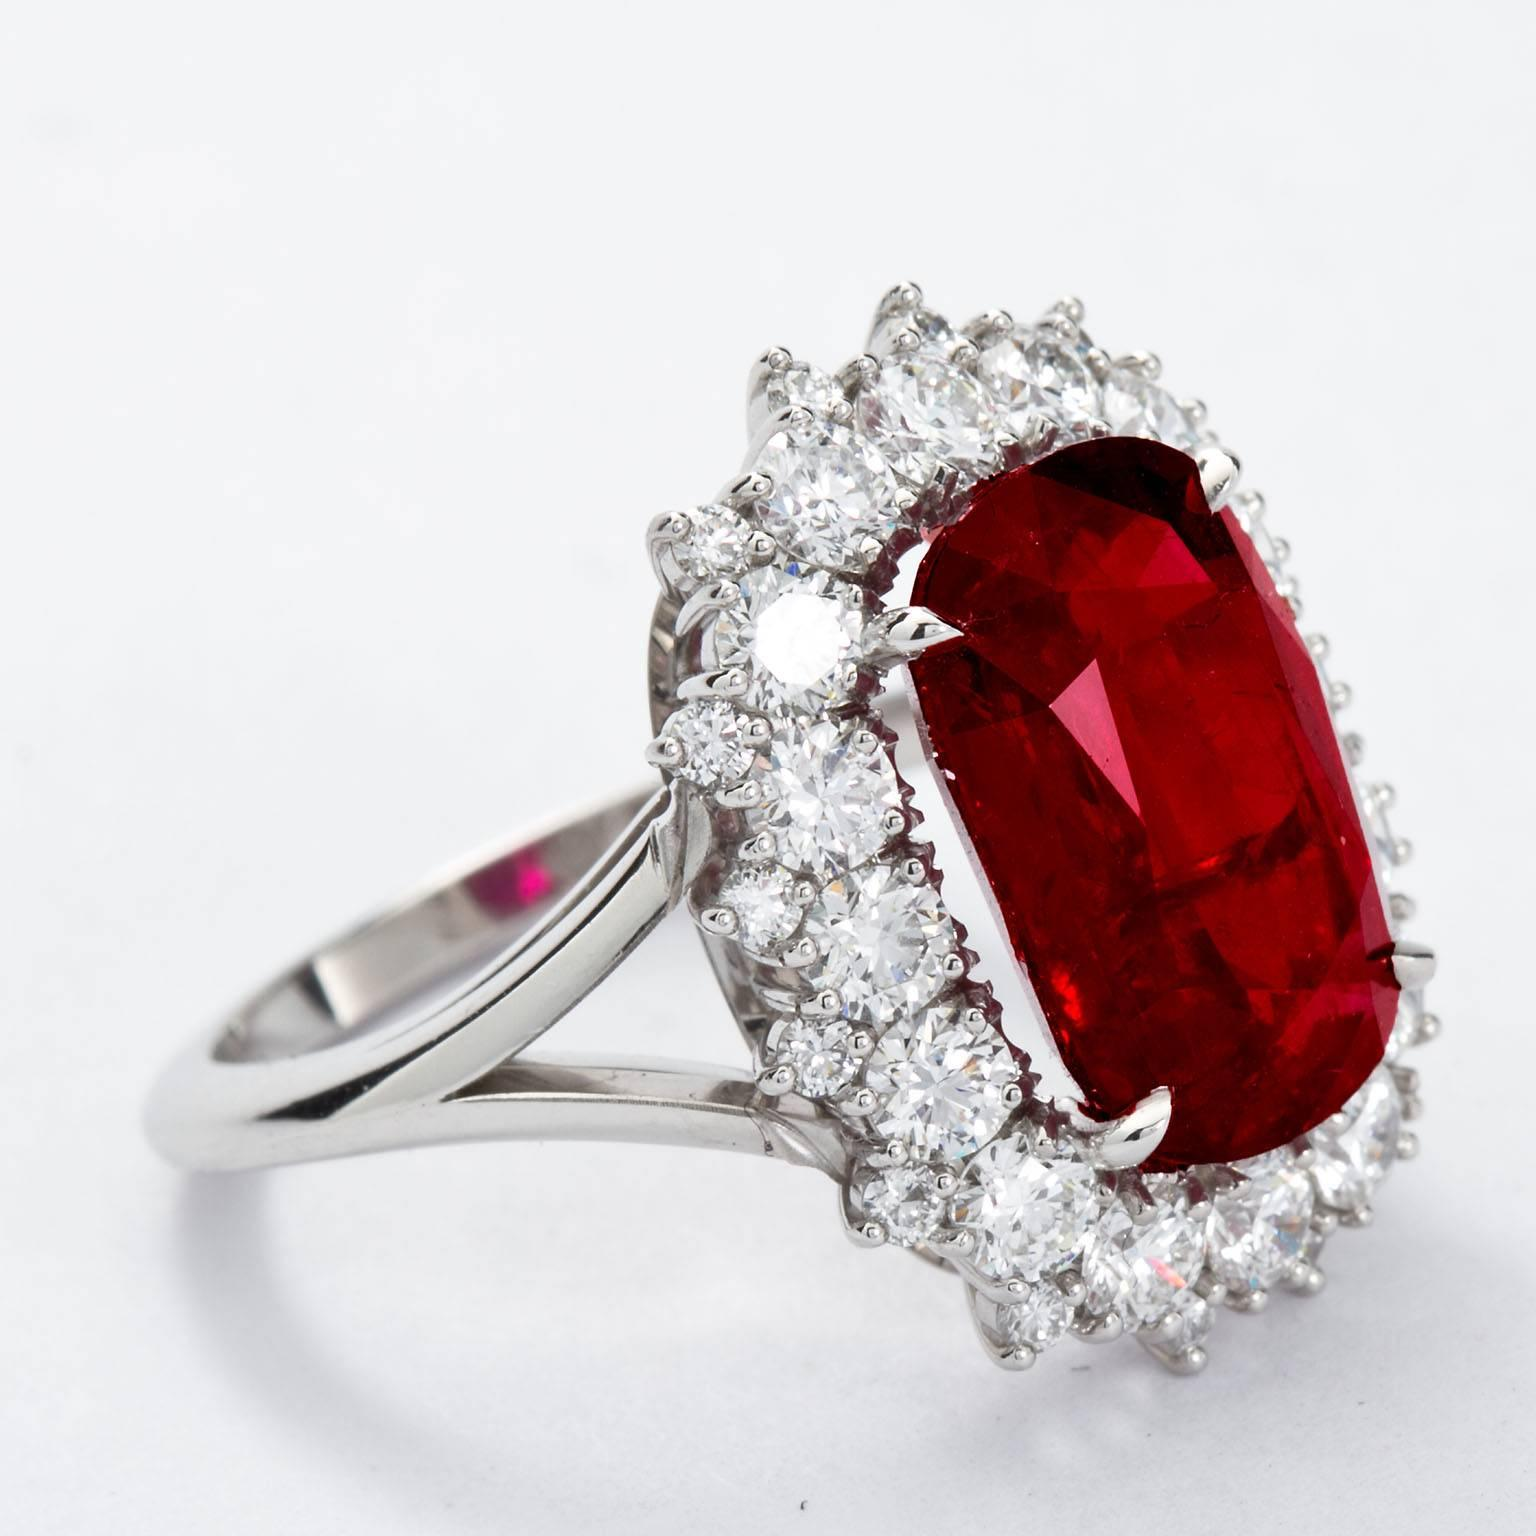 diamond bigstock ring engagement a blog rings buying am public and rose blood i